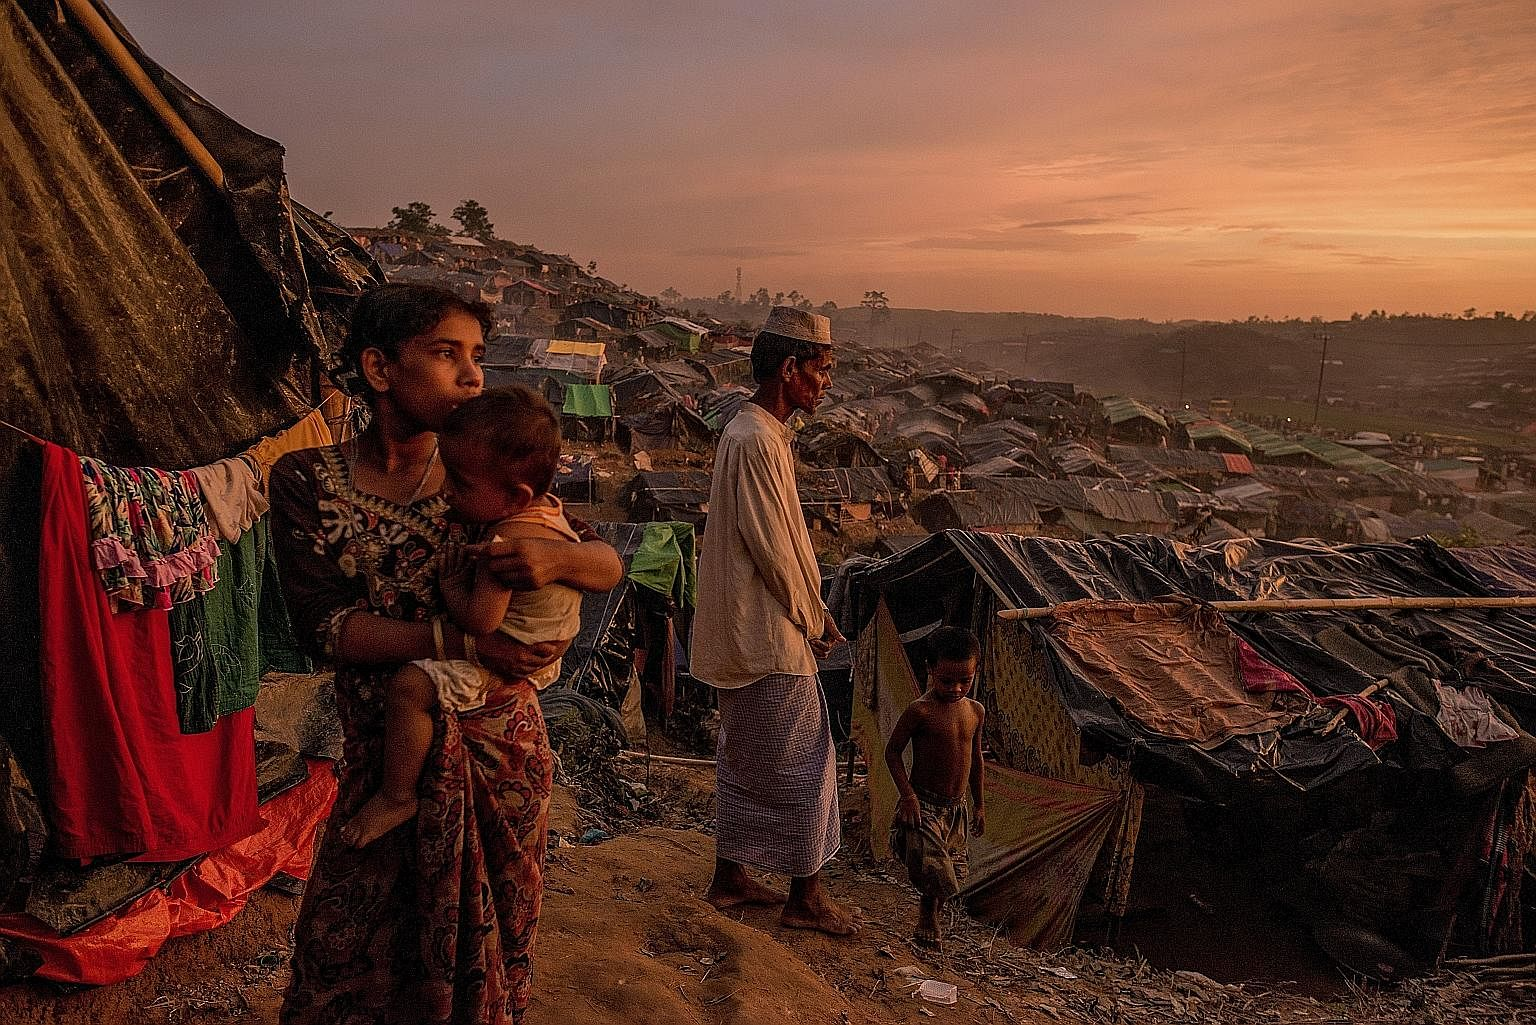 """Rohingya refugees in a makeshift camp in Cox's Bazar, Bangladesh, on Wednesday. The US has declared the violence against Myanmar's Muslim minority in Rakhine an act of """"ethnic cleansing"""" and Mr Rex Tillerson said it will pursue accountability through"""